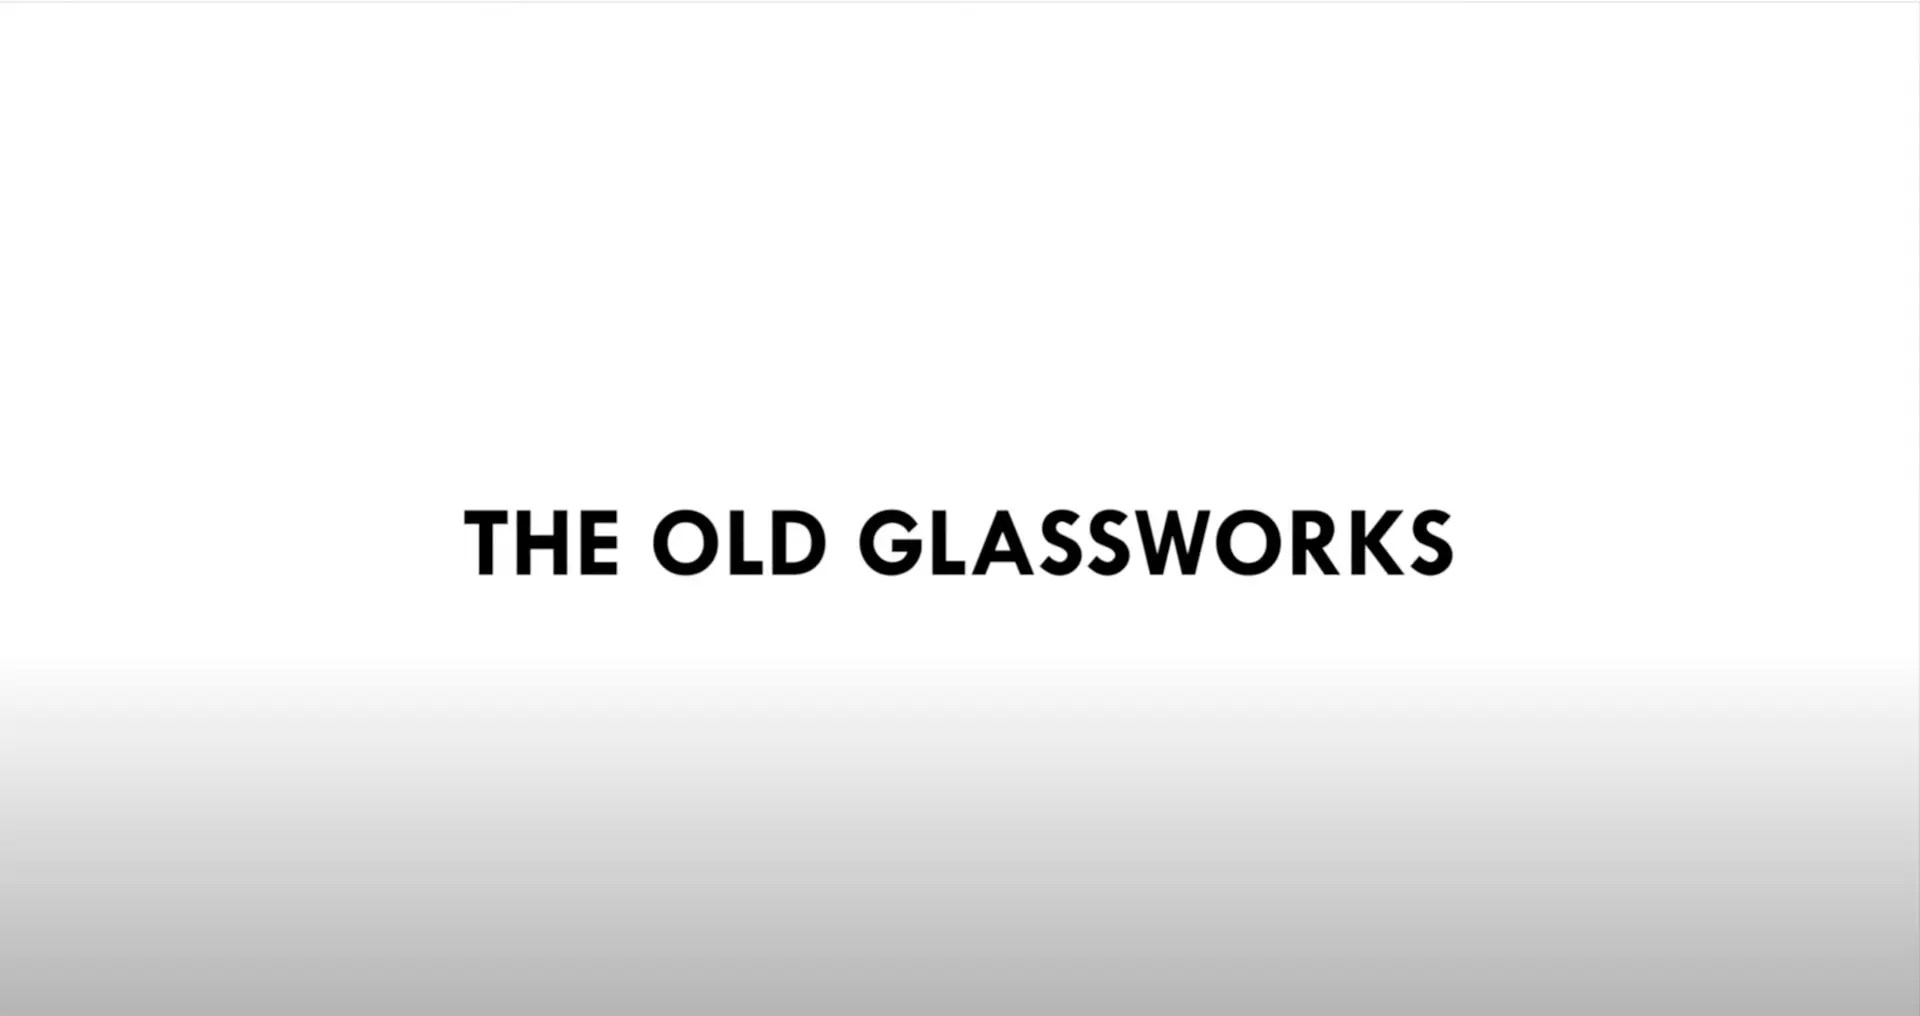 The Old Glassworks